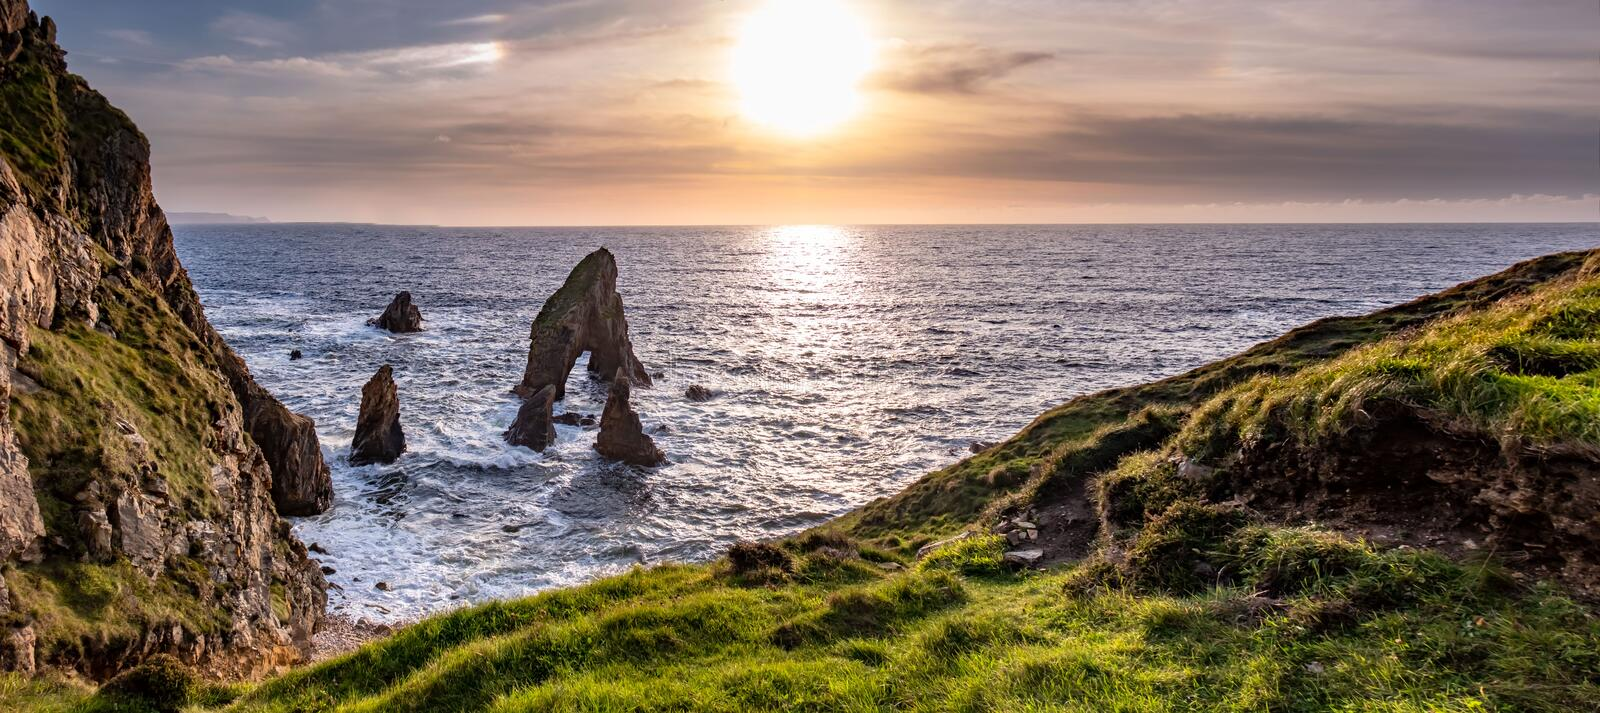 Crohy Head Sea Arch Breeches during sunset - County Donegal, Ireland.  stock photo